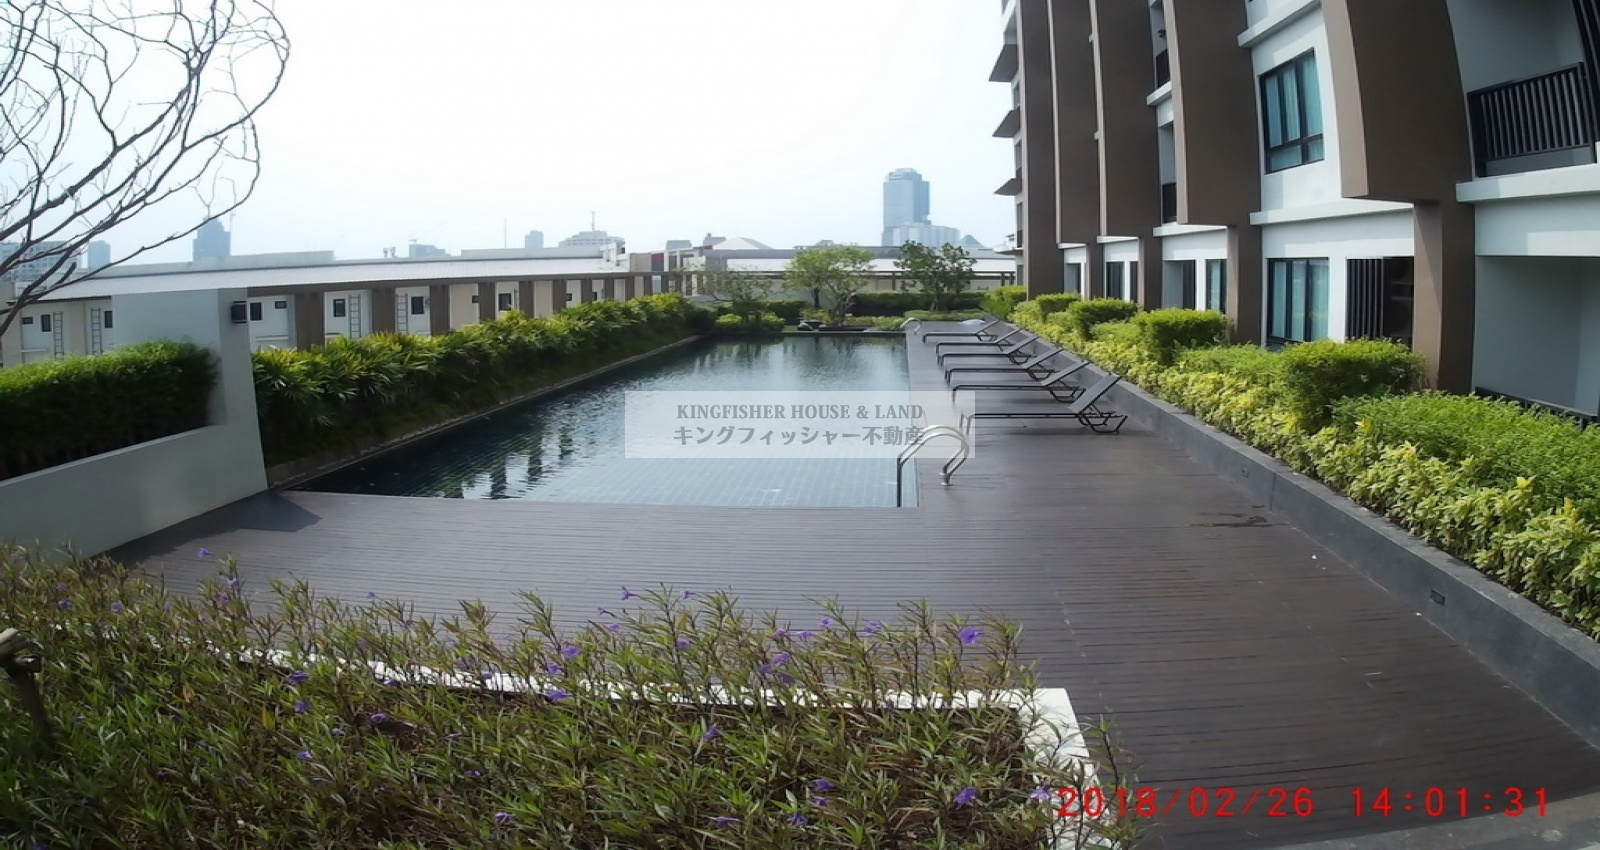 1 Bedrooms, Condominium, For Rent, 1 Bathrooms, Listing ID 1209, Sriracha, Thailand, 20110,